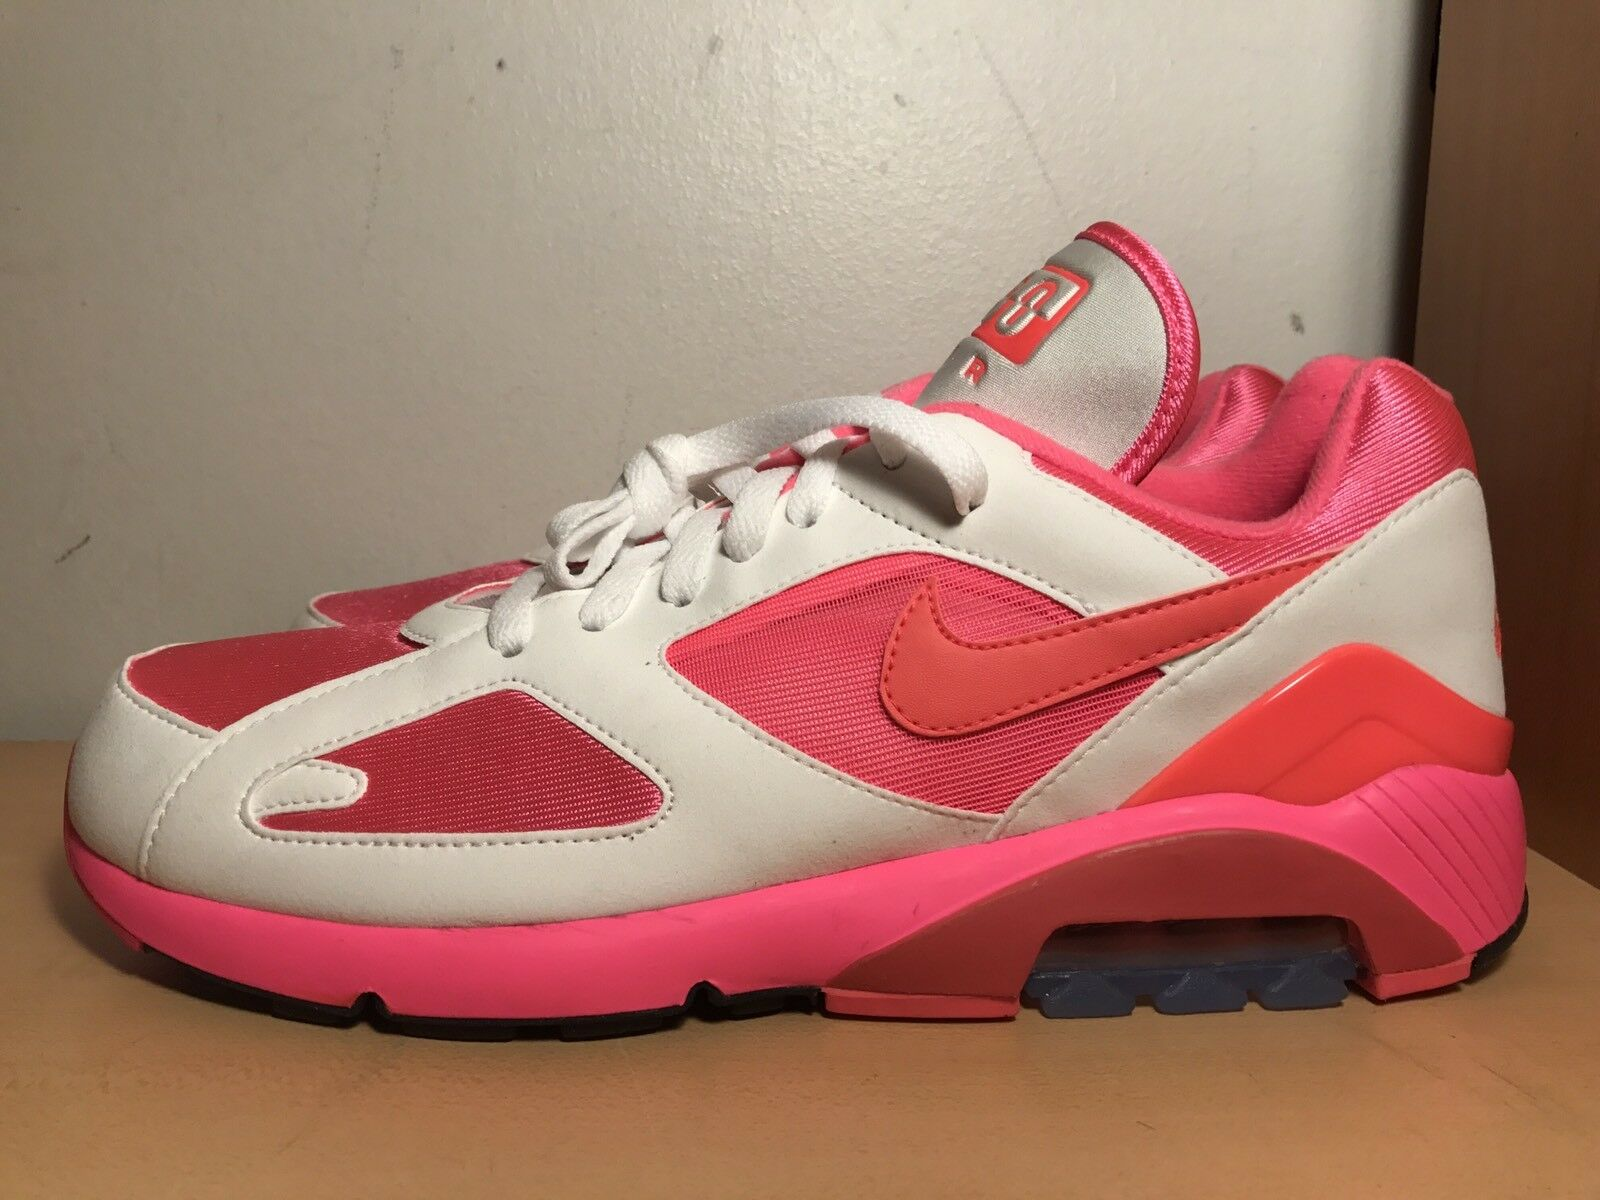 Nike x COMME des GARCONS Air Max 180 Weiß / Laser Pink AO4641-600